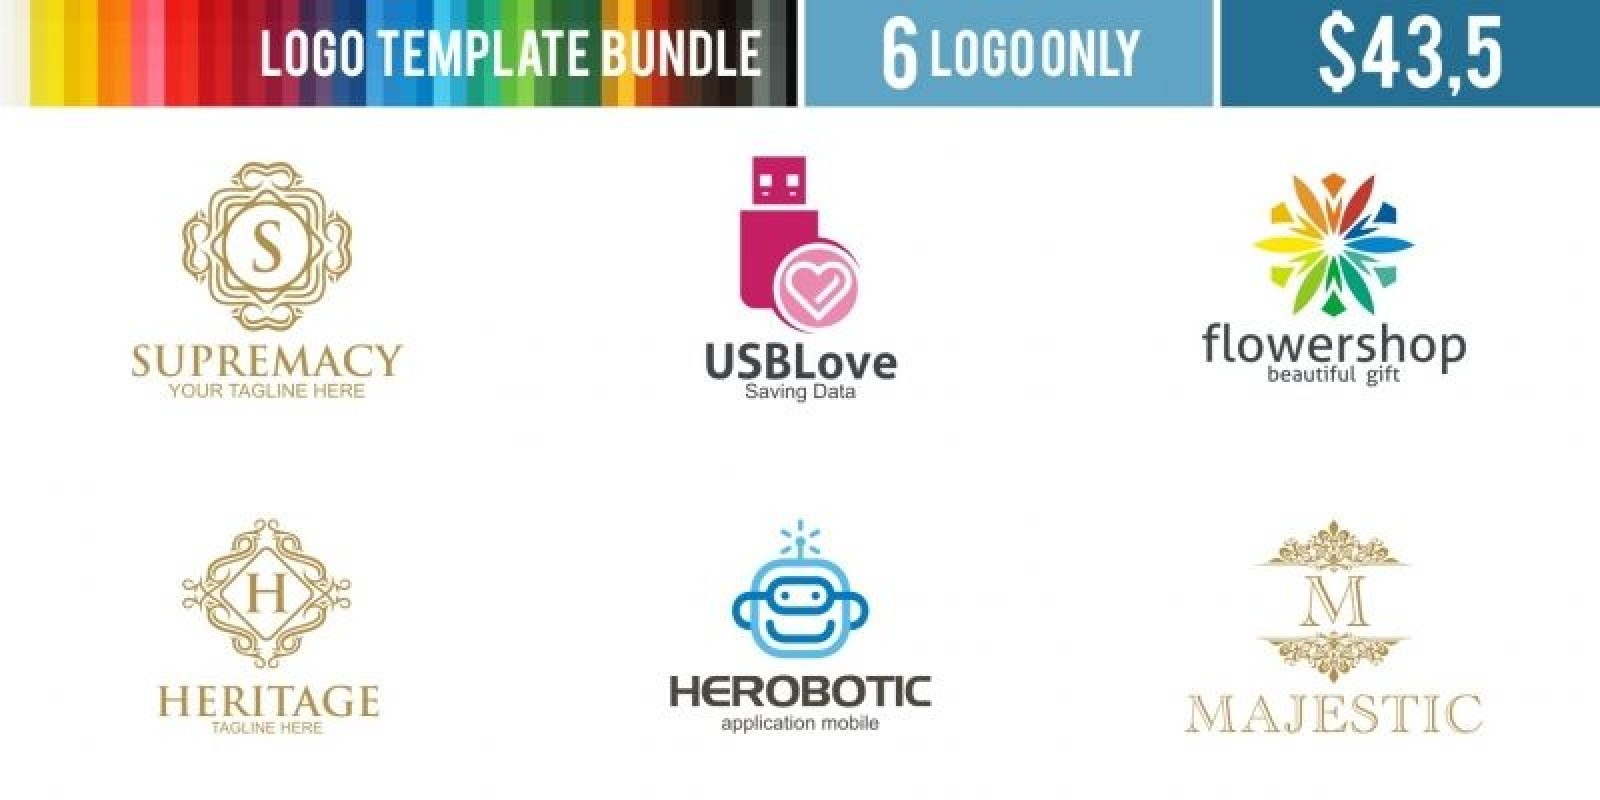 Logo Templates Bundle #5